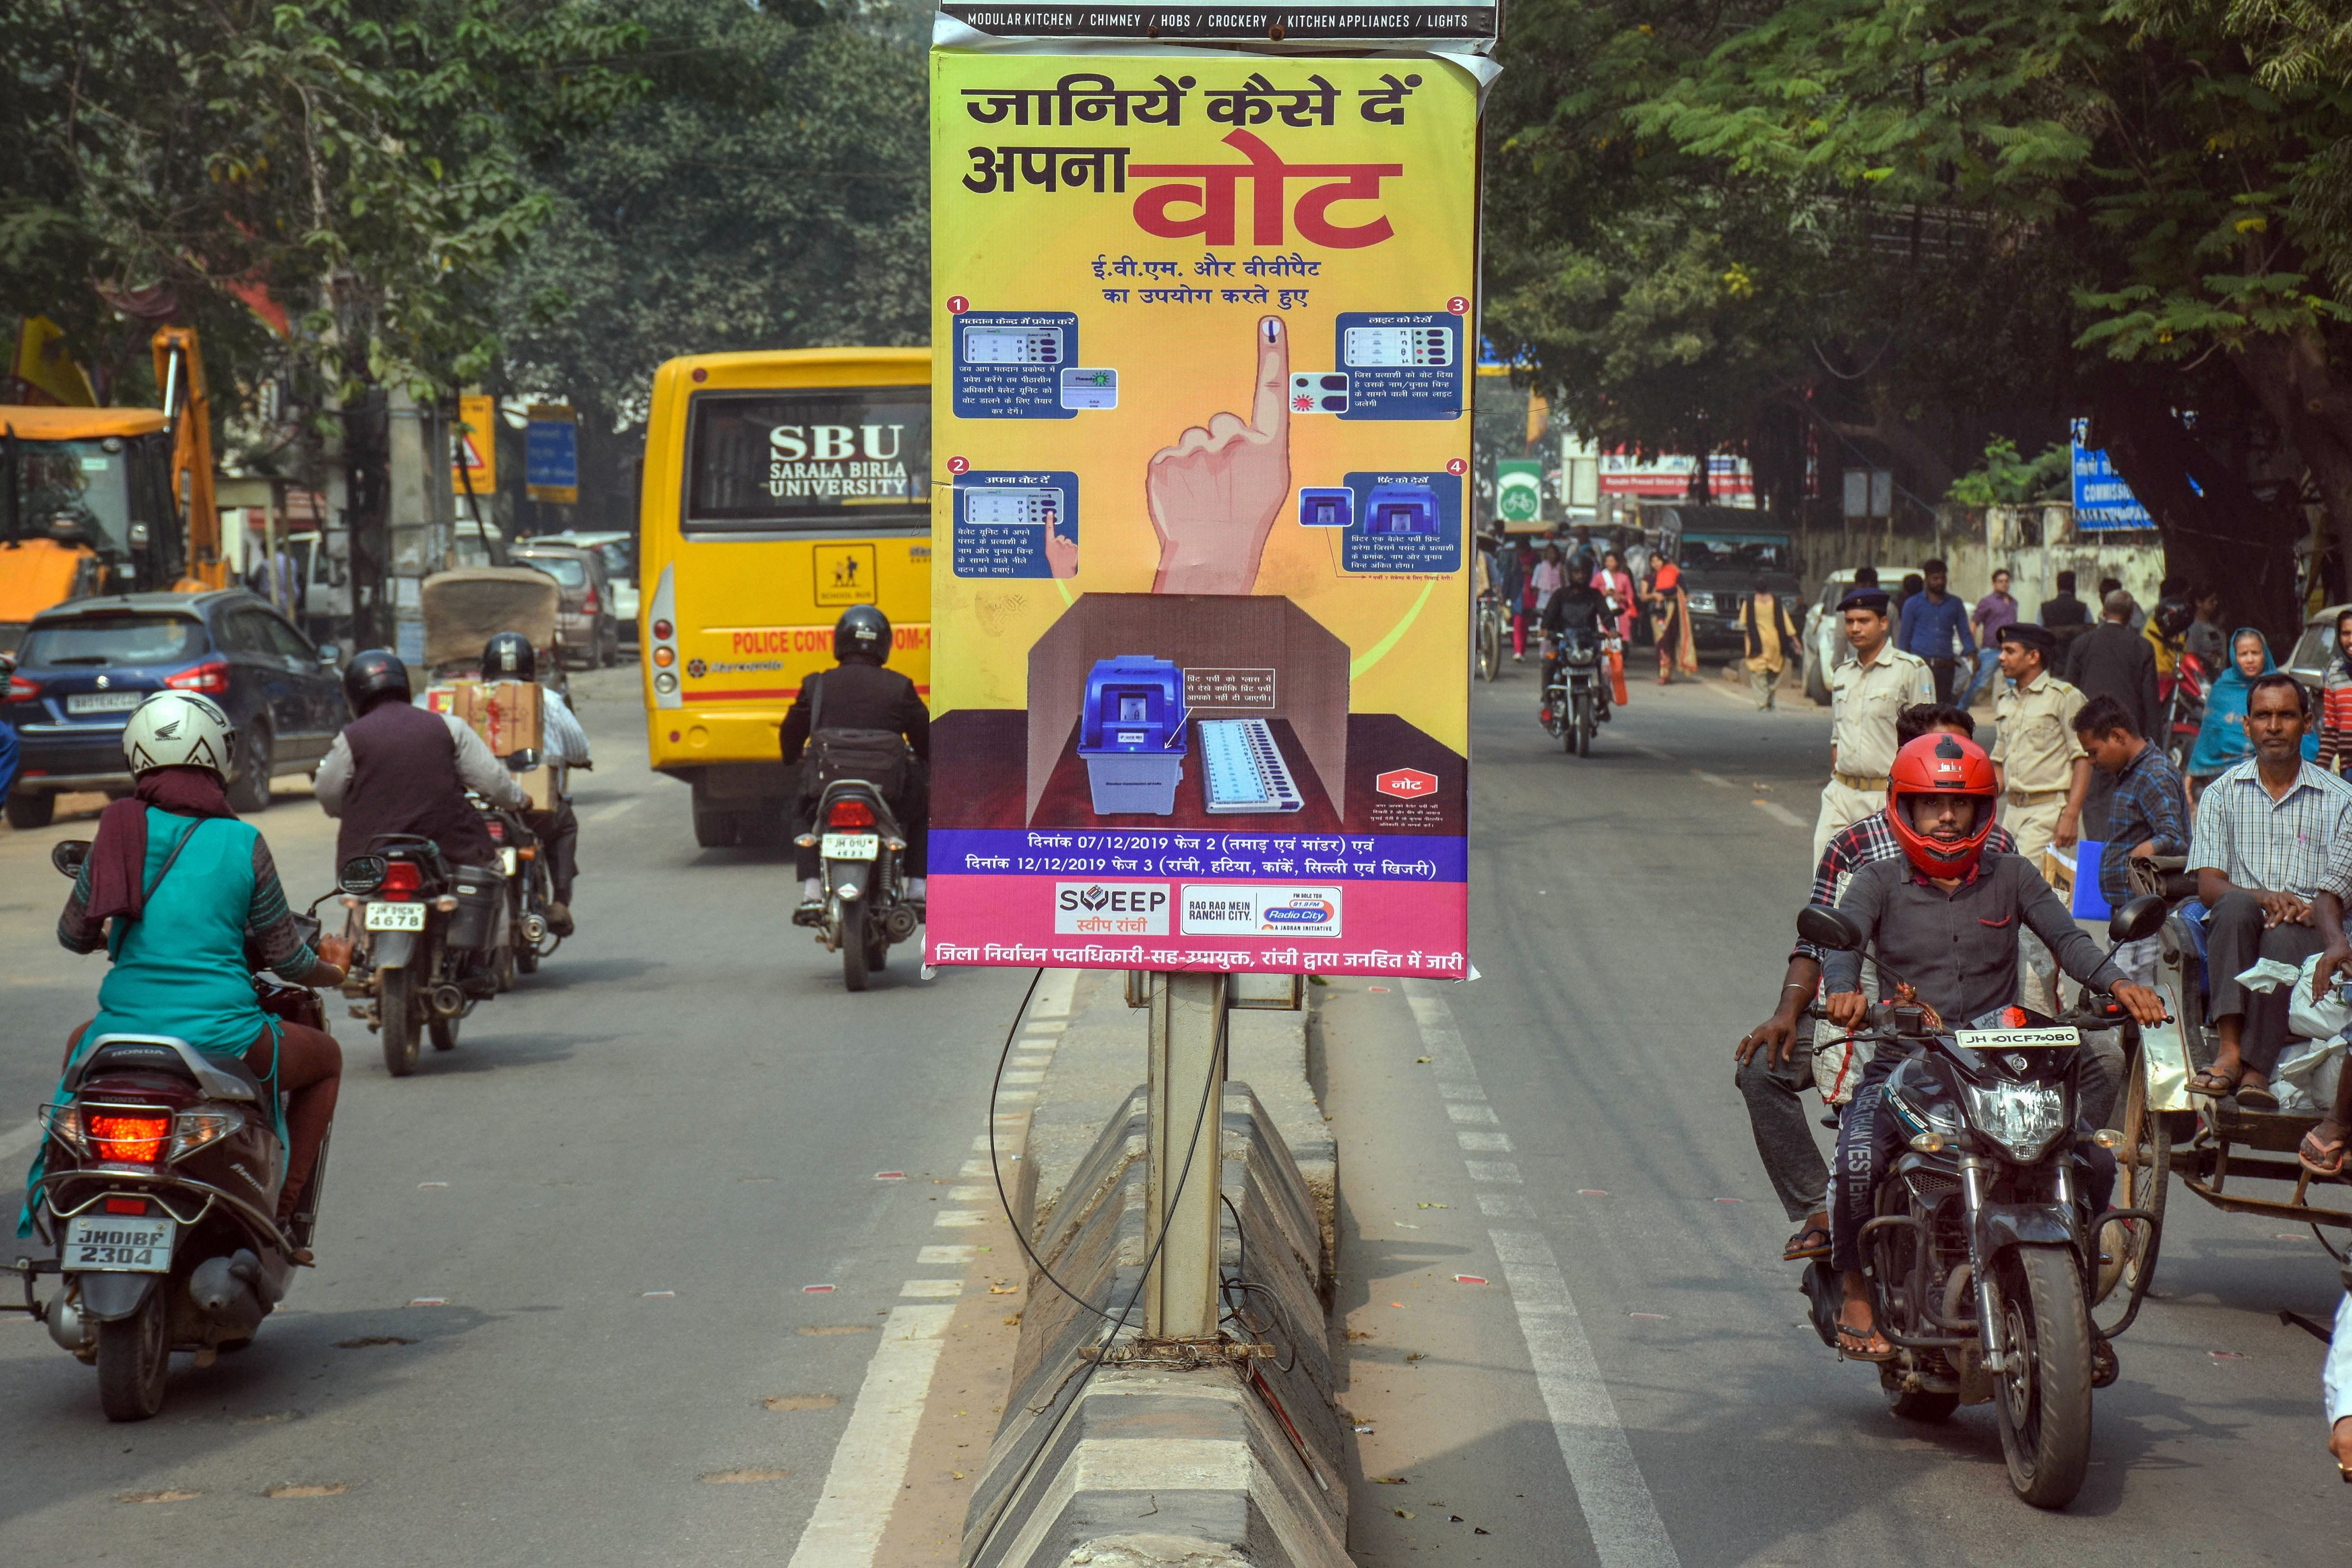 A pole banner put up by the Election Commission educates voters on how to vote, ahead of the Jharkhand Assembly polls, in Ranchi, Tuesday, November 5, 2019.